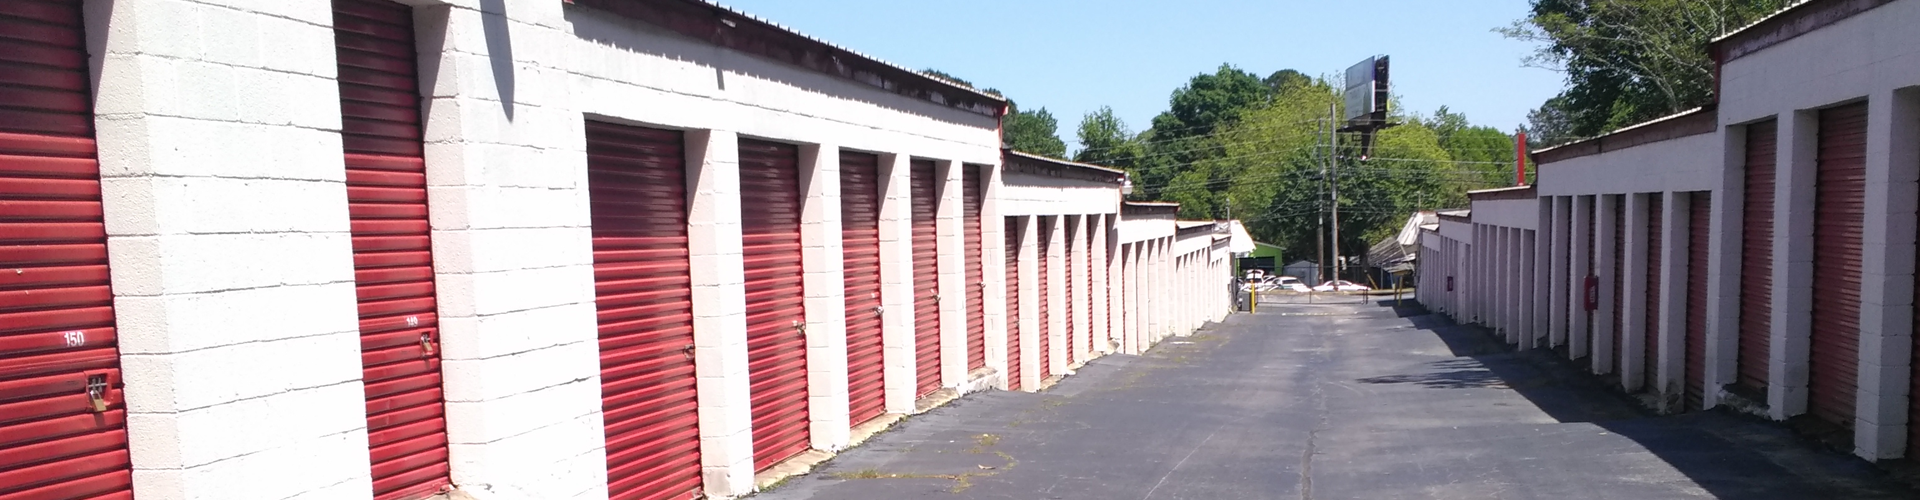 Jonesboro GA Storage Units